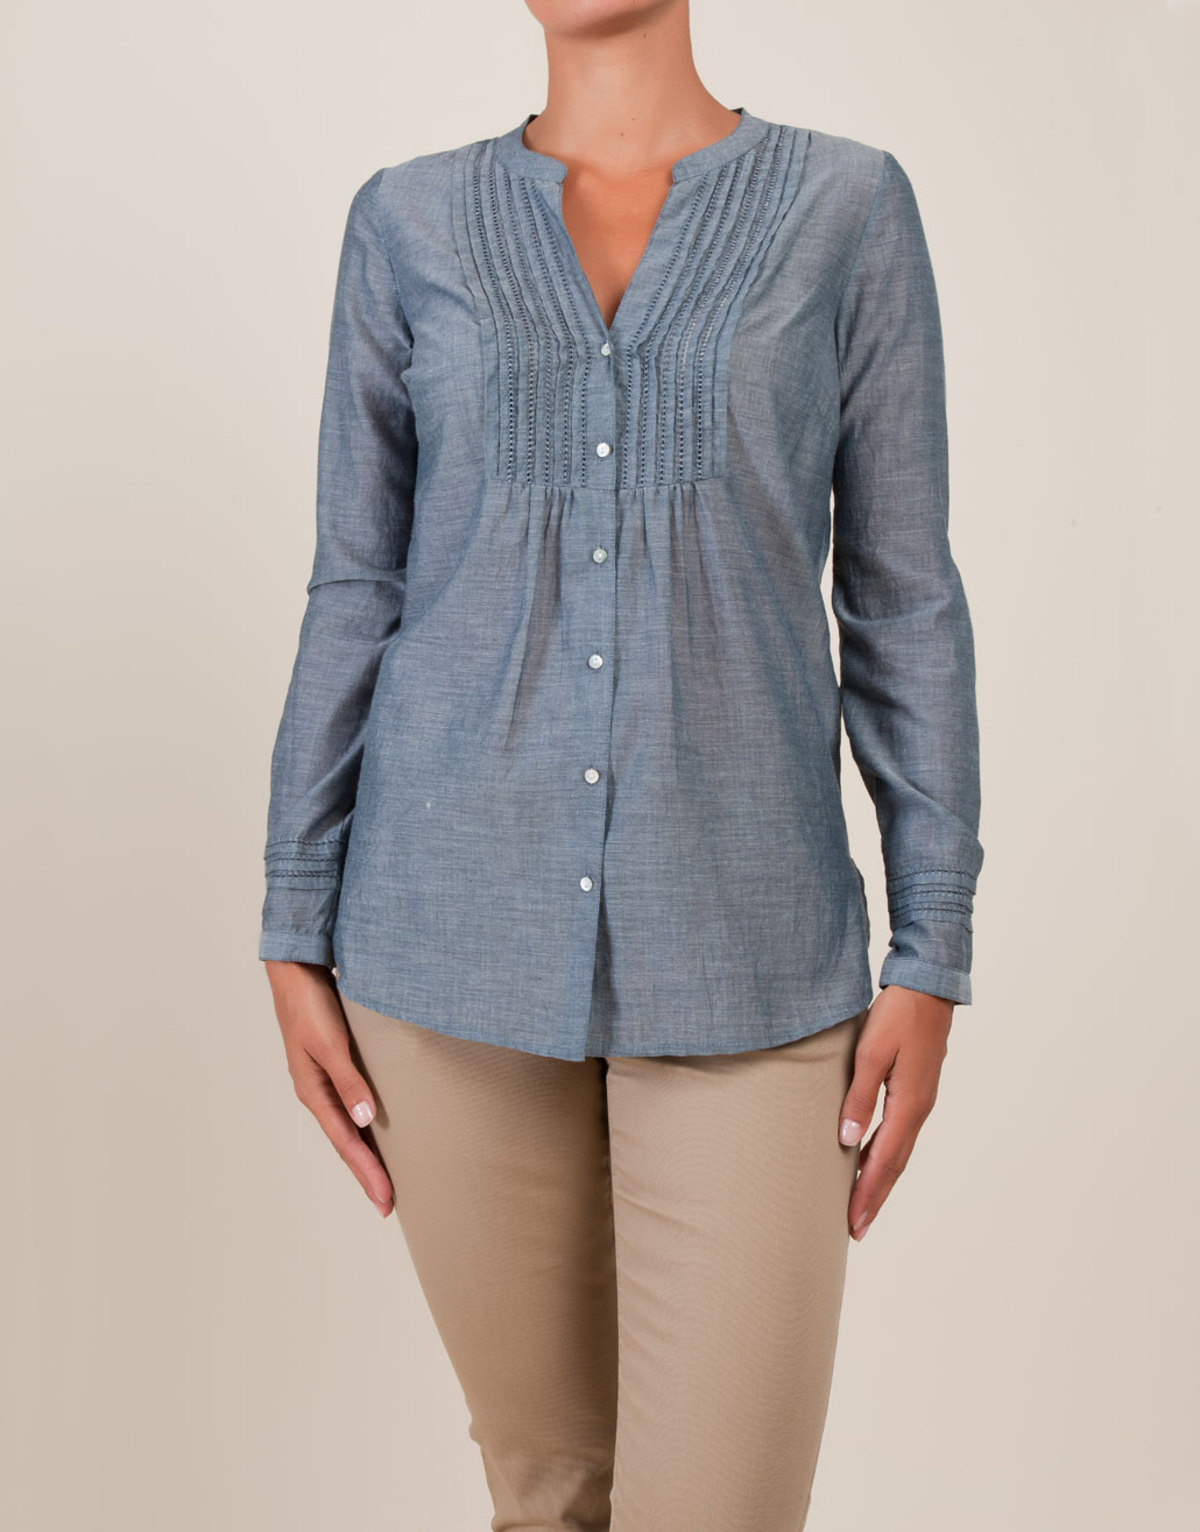 RUSH COLLECTION: BLUSAS PARA DAMAS EN CHAMBRAY